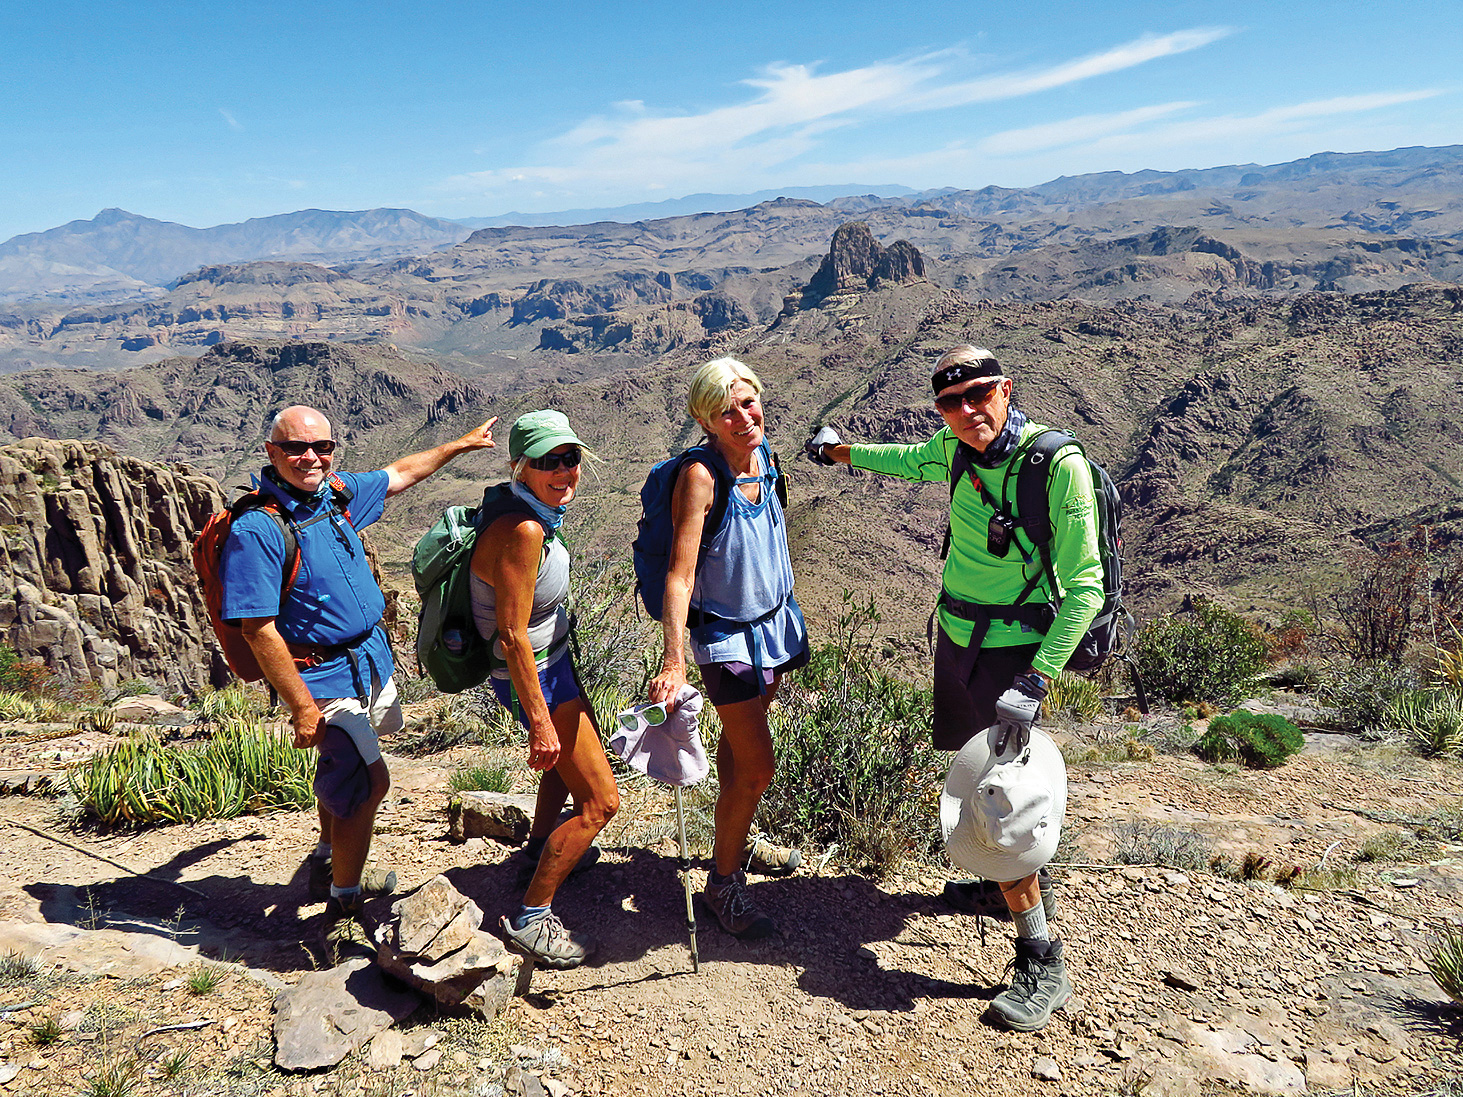 Left to right: Neal Wring, Kris Raczkiewicz, Eileen Lords-Mosse, and Lynn Warren (photographer) pausing near the base of Superstition Peak with Weaver's Needle far below.